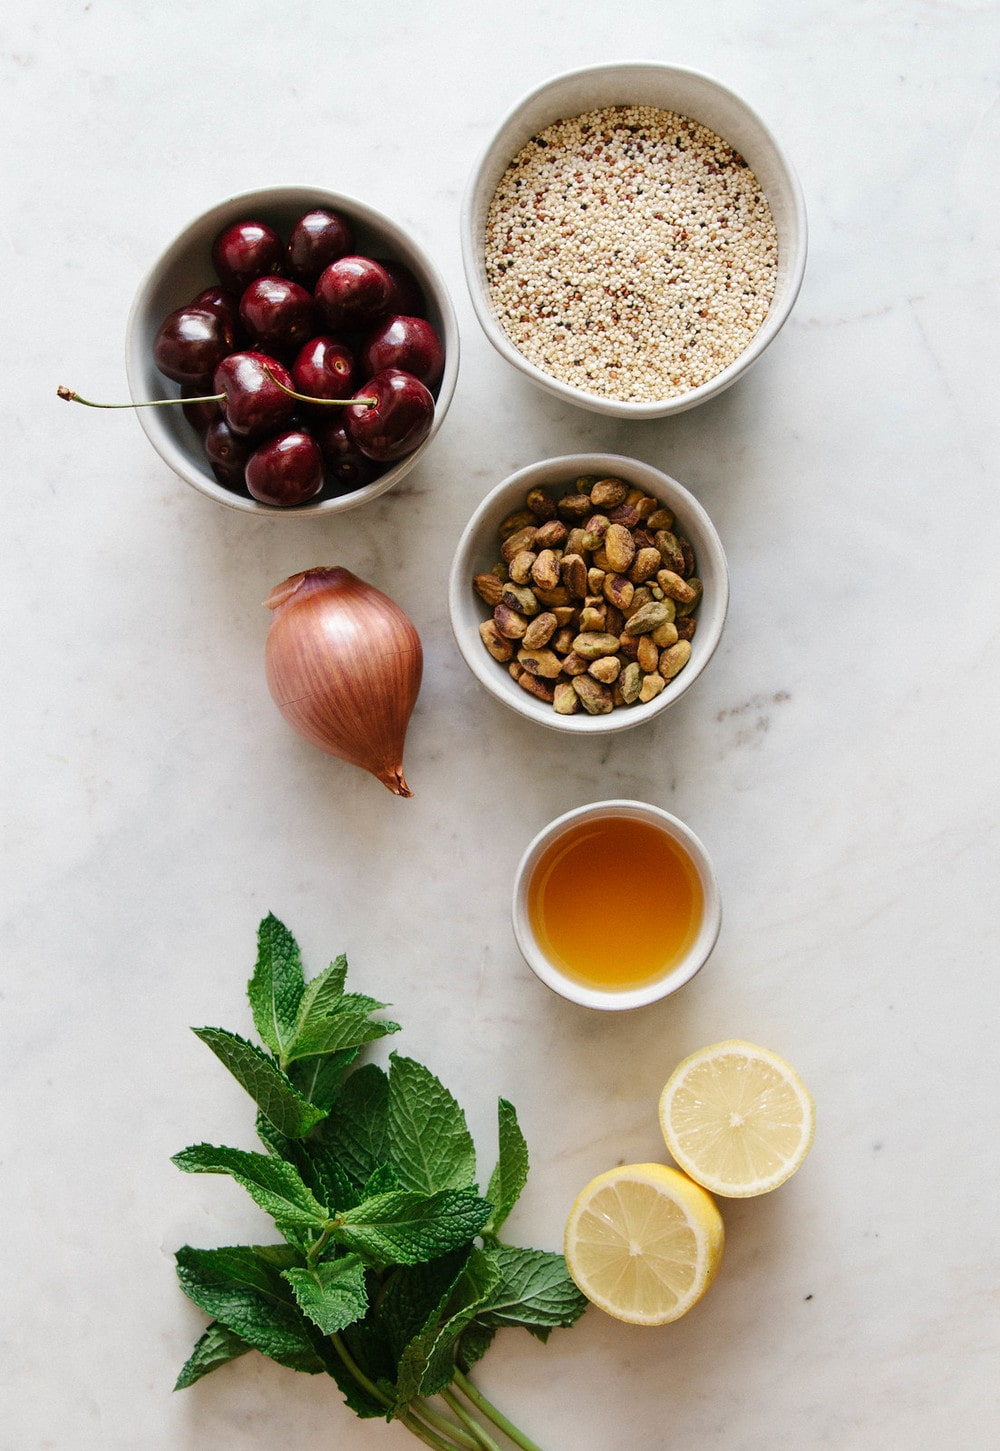 ingredients for cherry pistachio mint quinoa salad on a marble slab